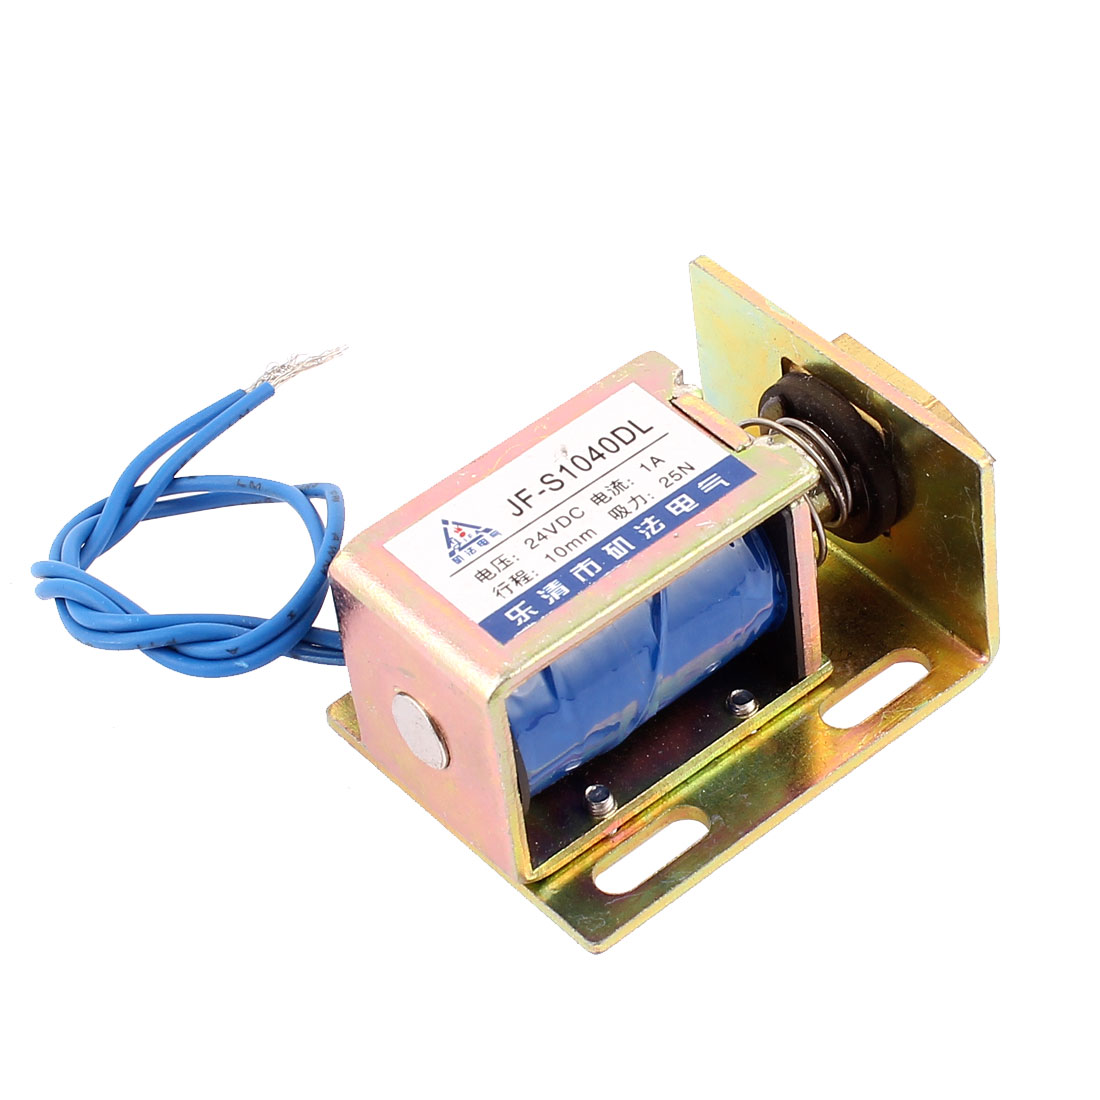 UXCELL Jf-S1040dl  24V 1A 25N Force Energy Saving Tractive Solenoid Electromagnet  цены